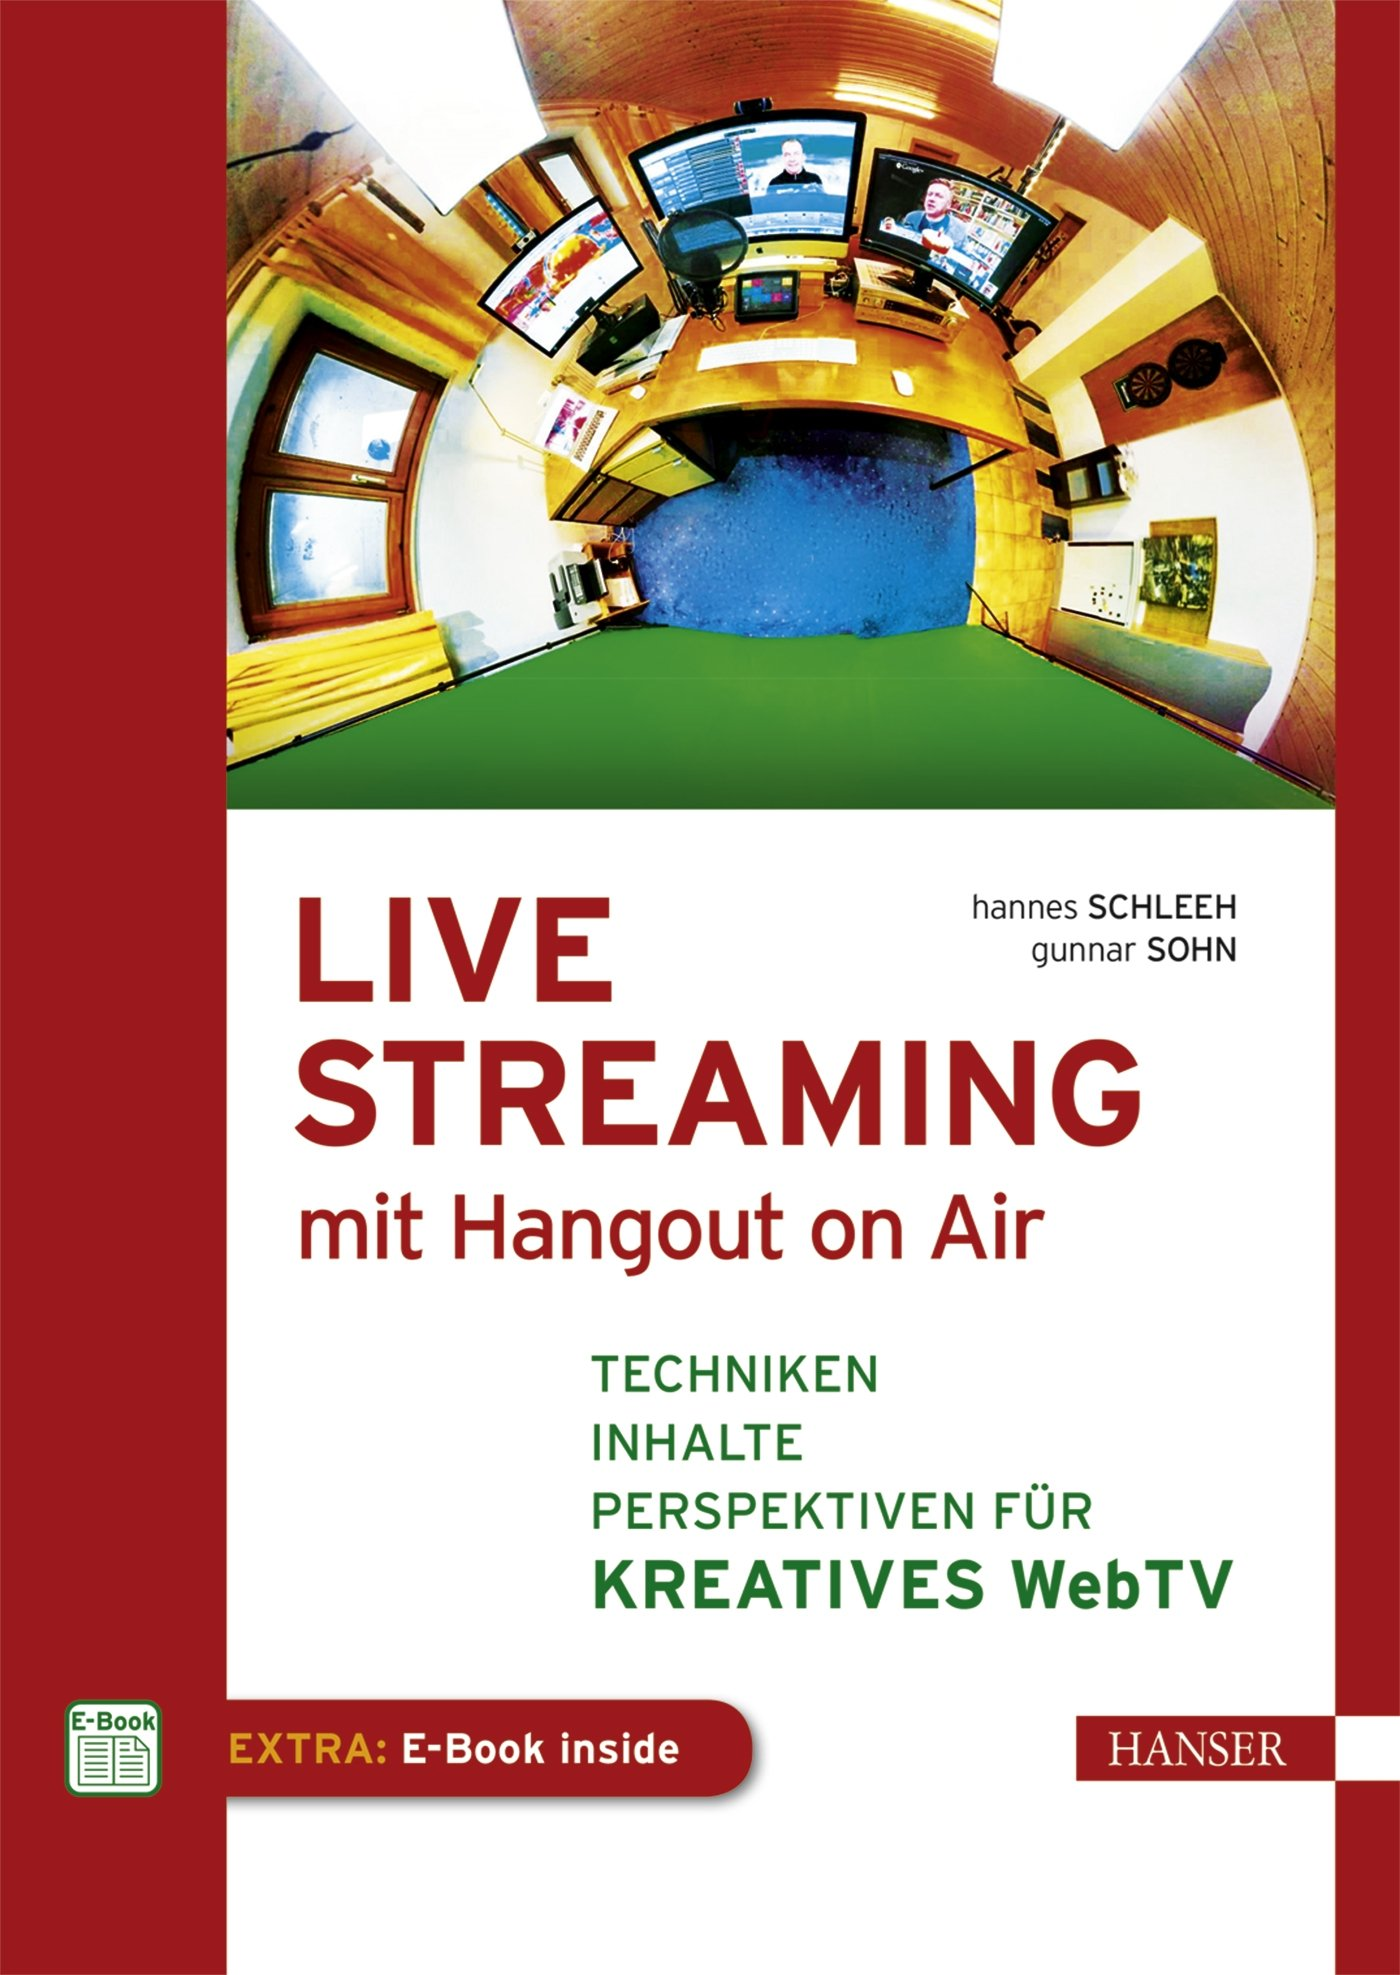 Live Streaming mit Hangout On Air: Techniken, Inhalte & Perspektiven für kreatives Web TV